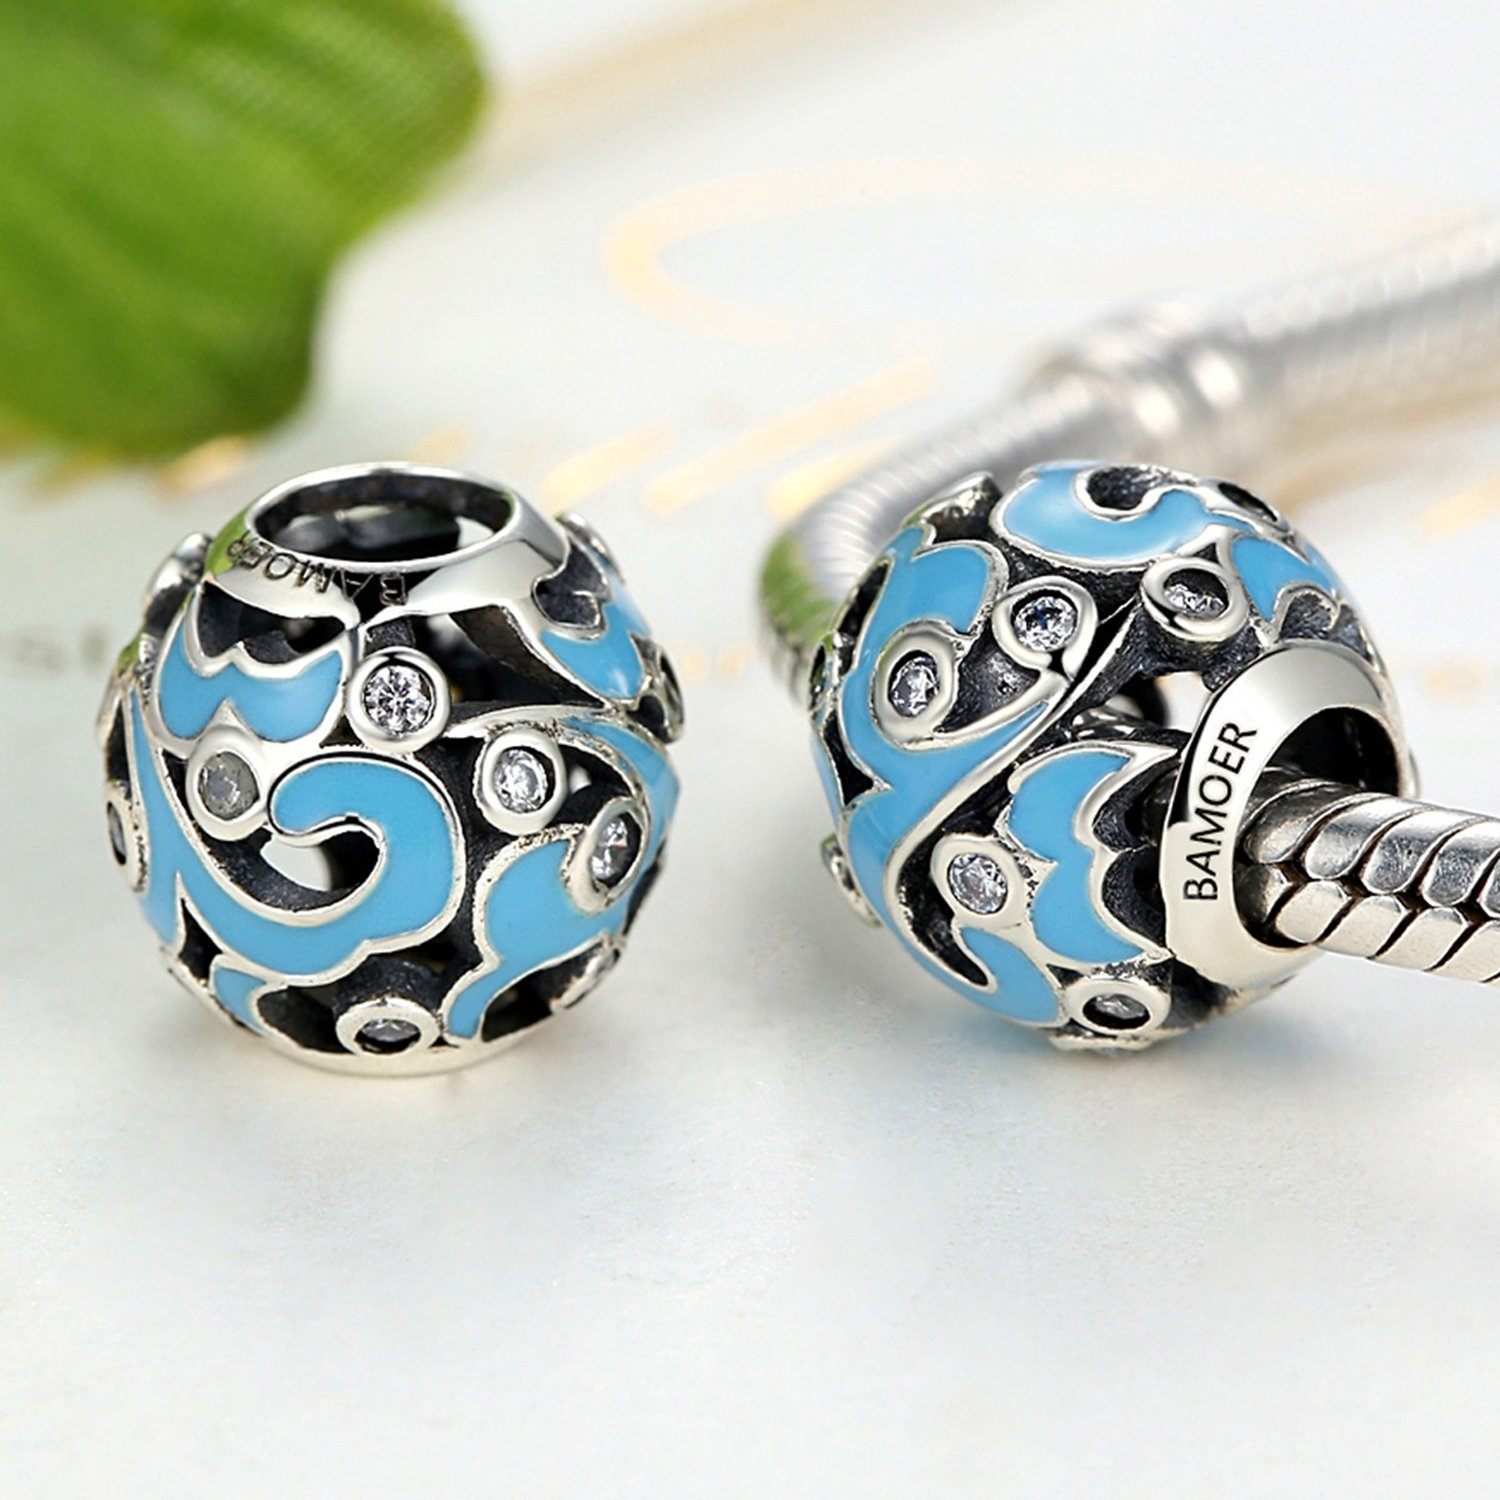 XingYue Jewelry S925 Sterling Silver Boat Anchor Bead Charm,Nautical Anchor Crystal Charm Bead fit Women Charms Bracelets